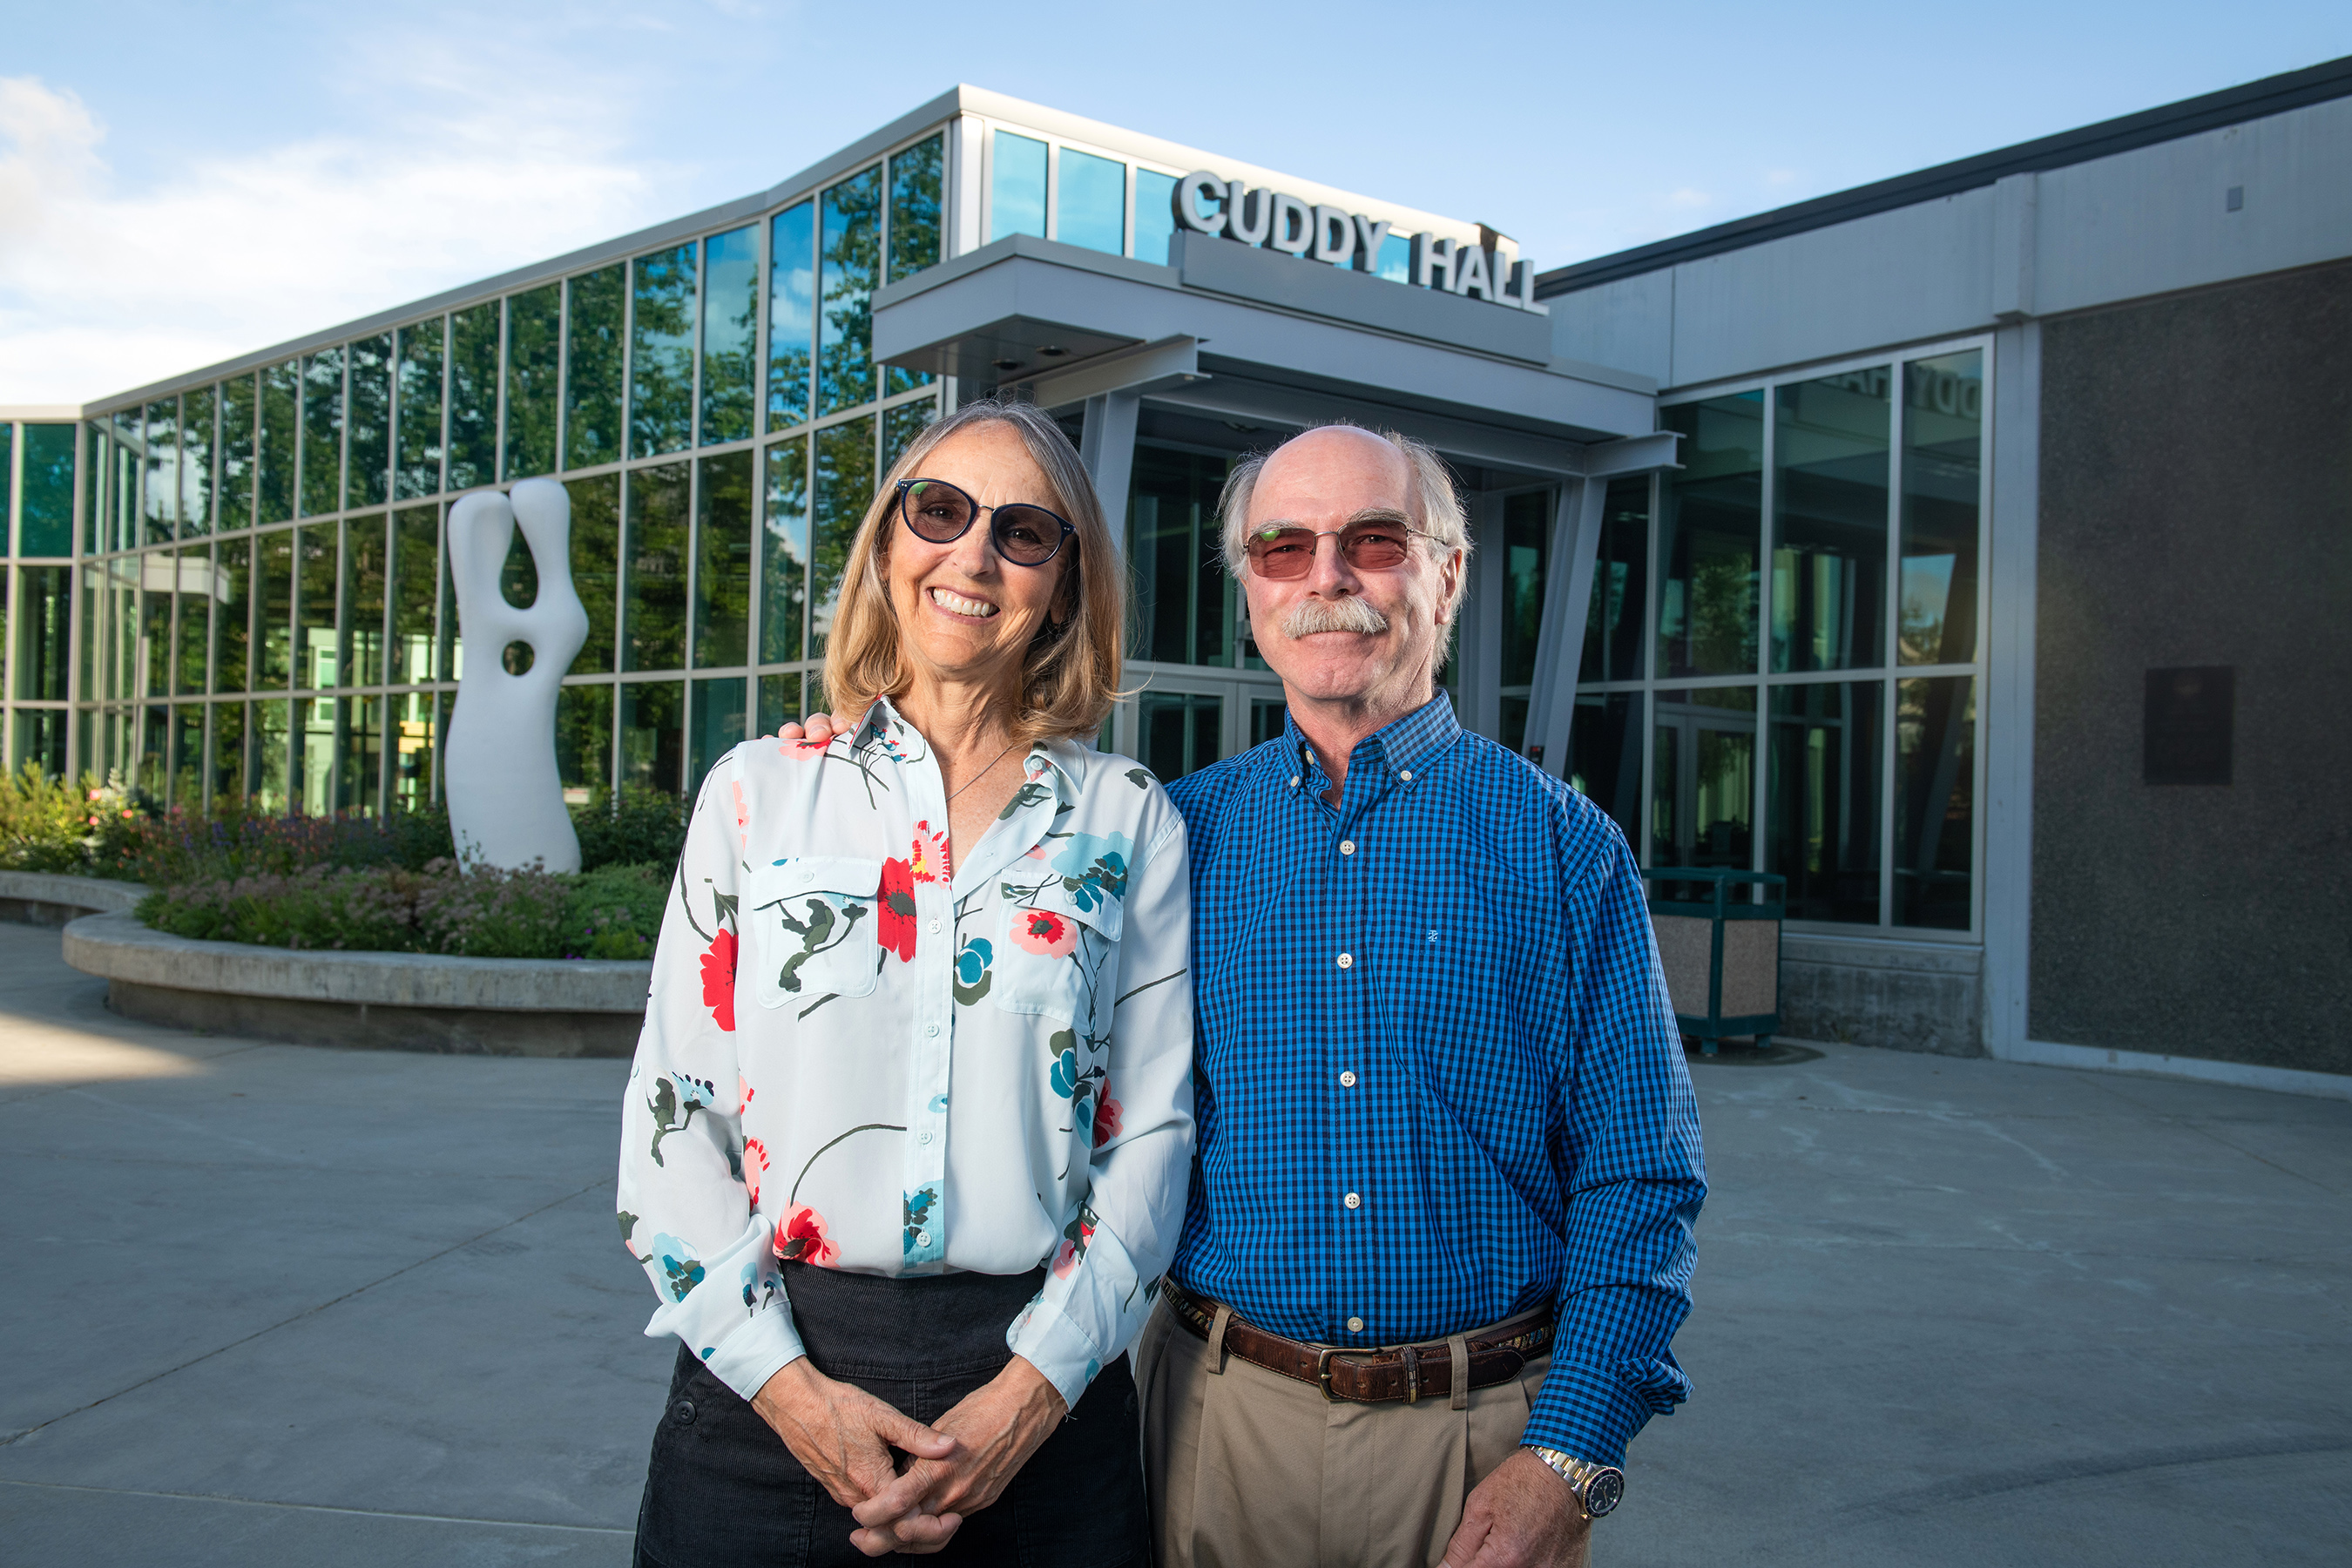 Gary Klopfer, '81, and Jane Cuddy Klopfer in front of Cuddy Hall on the UAA campus.The building is named to honor Jane's grandmother, Lucy Hon Cuddy.